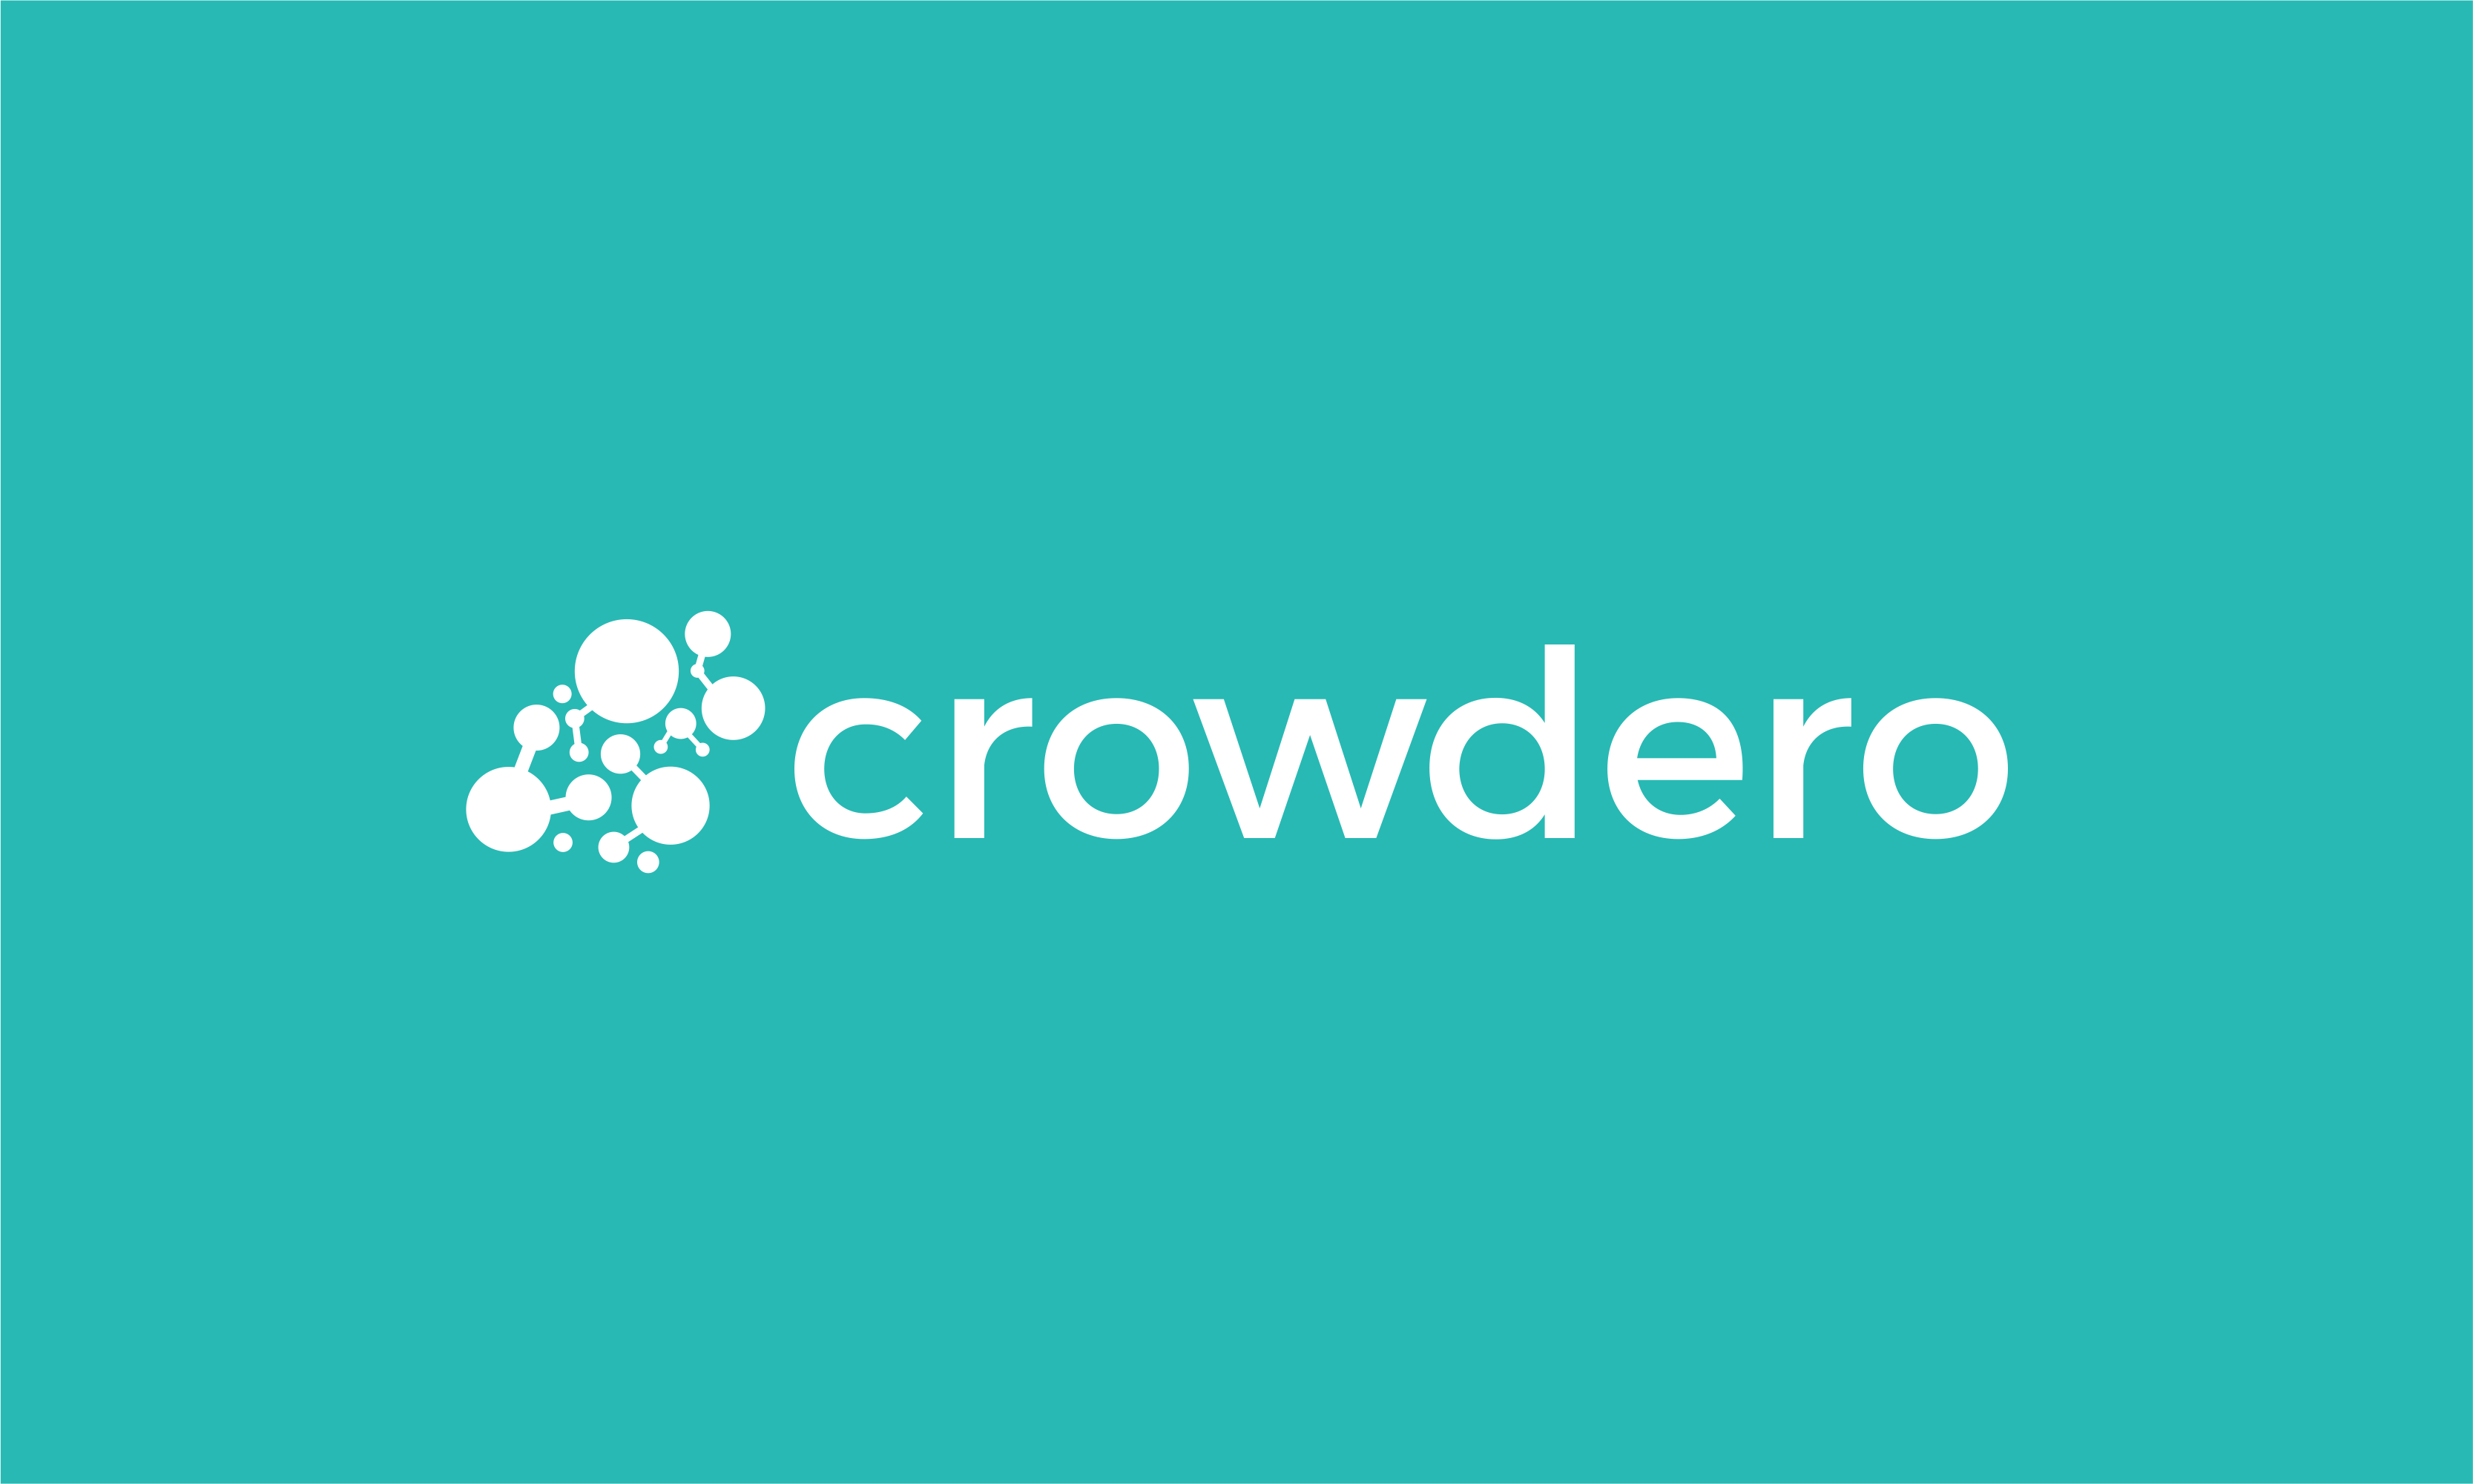 Crowdero - Crowdsourcing product name for sale